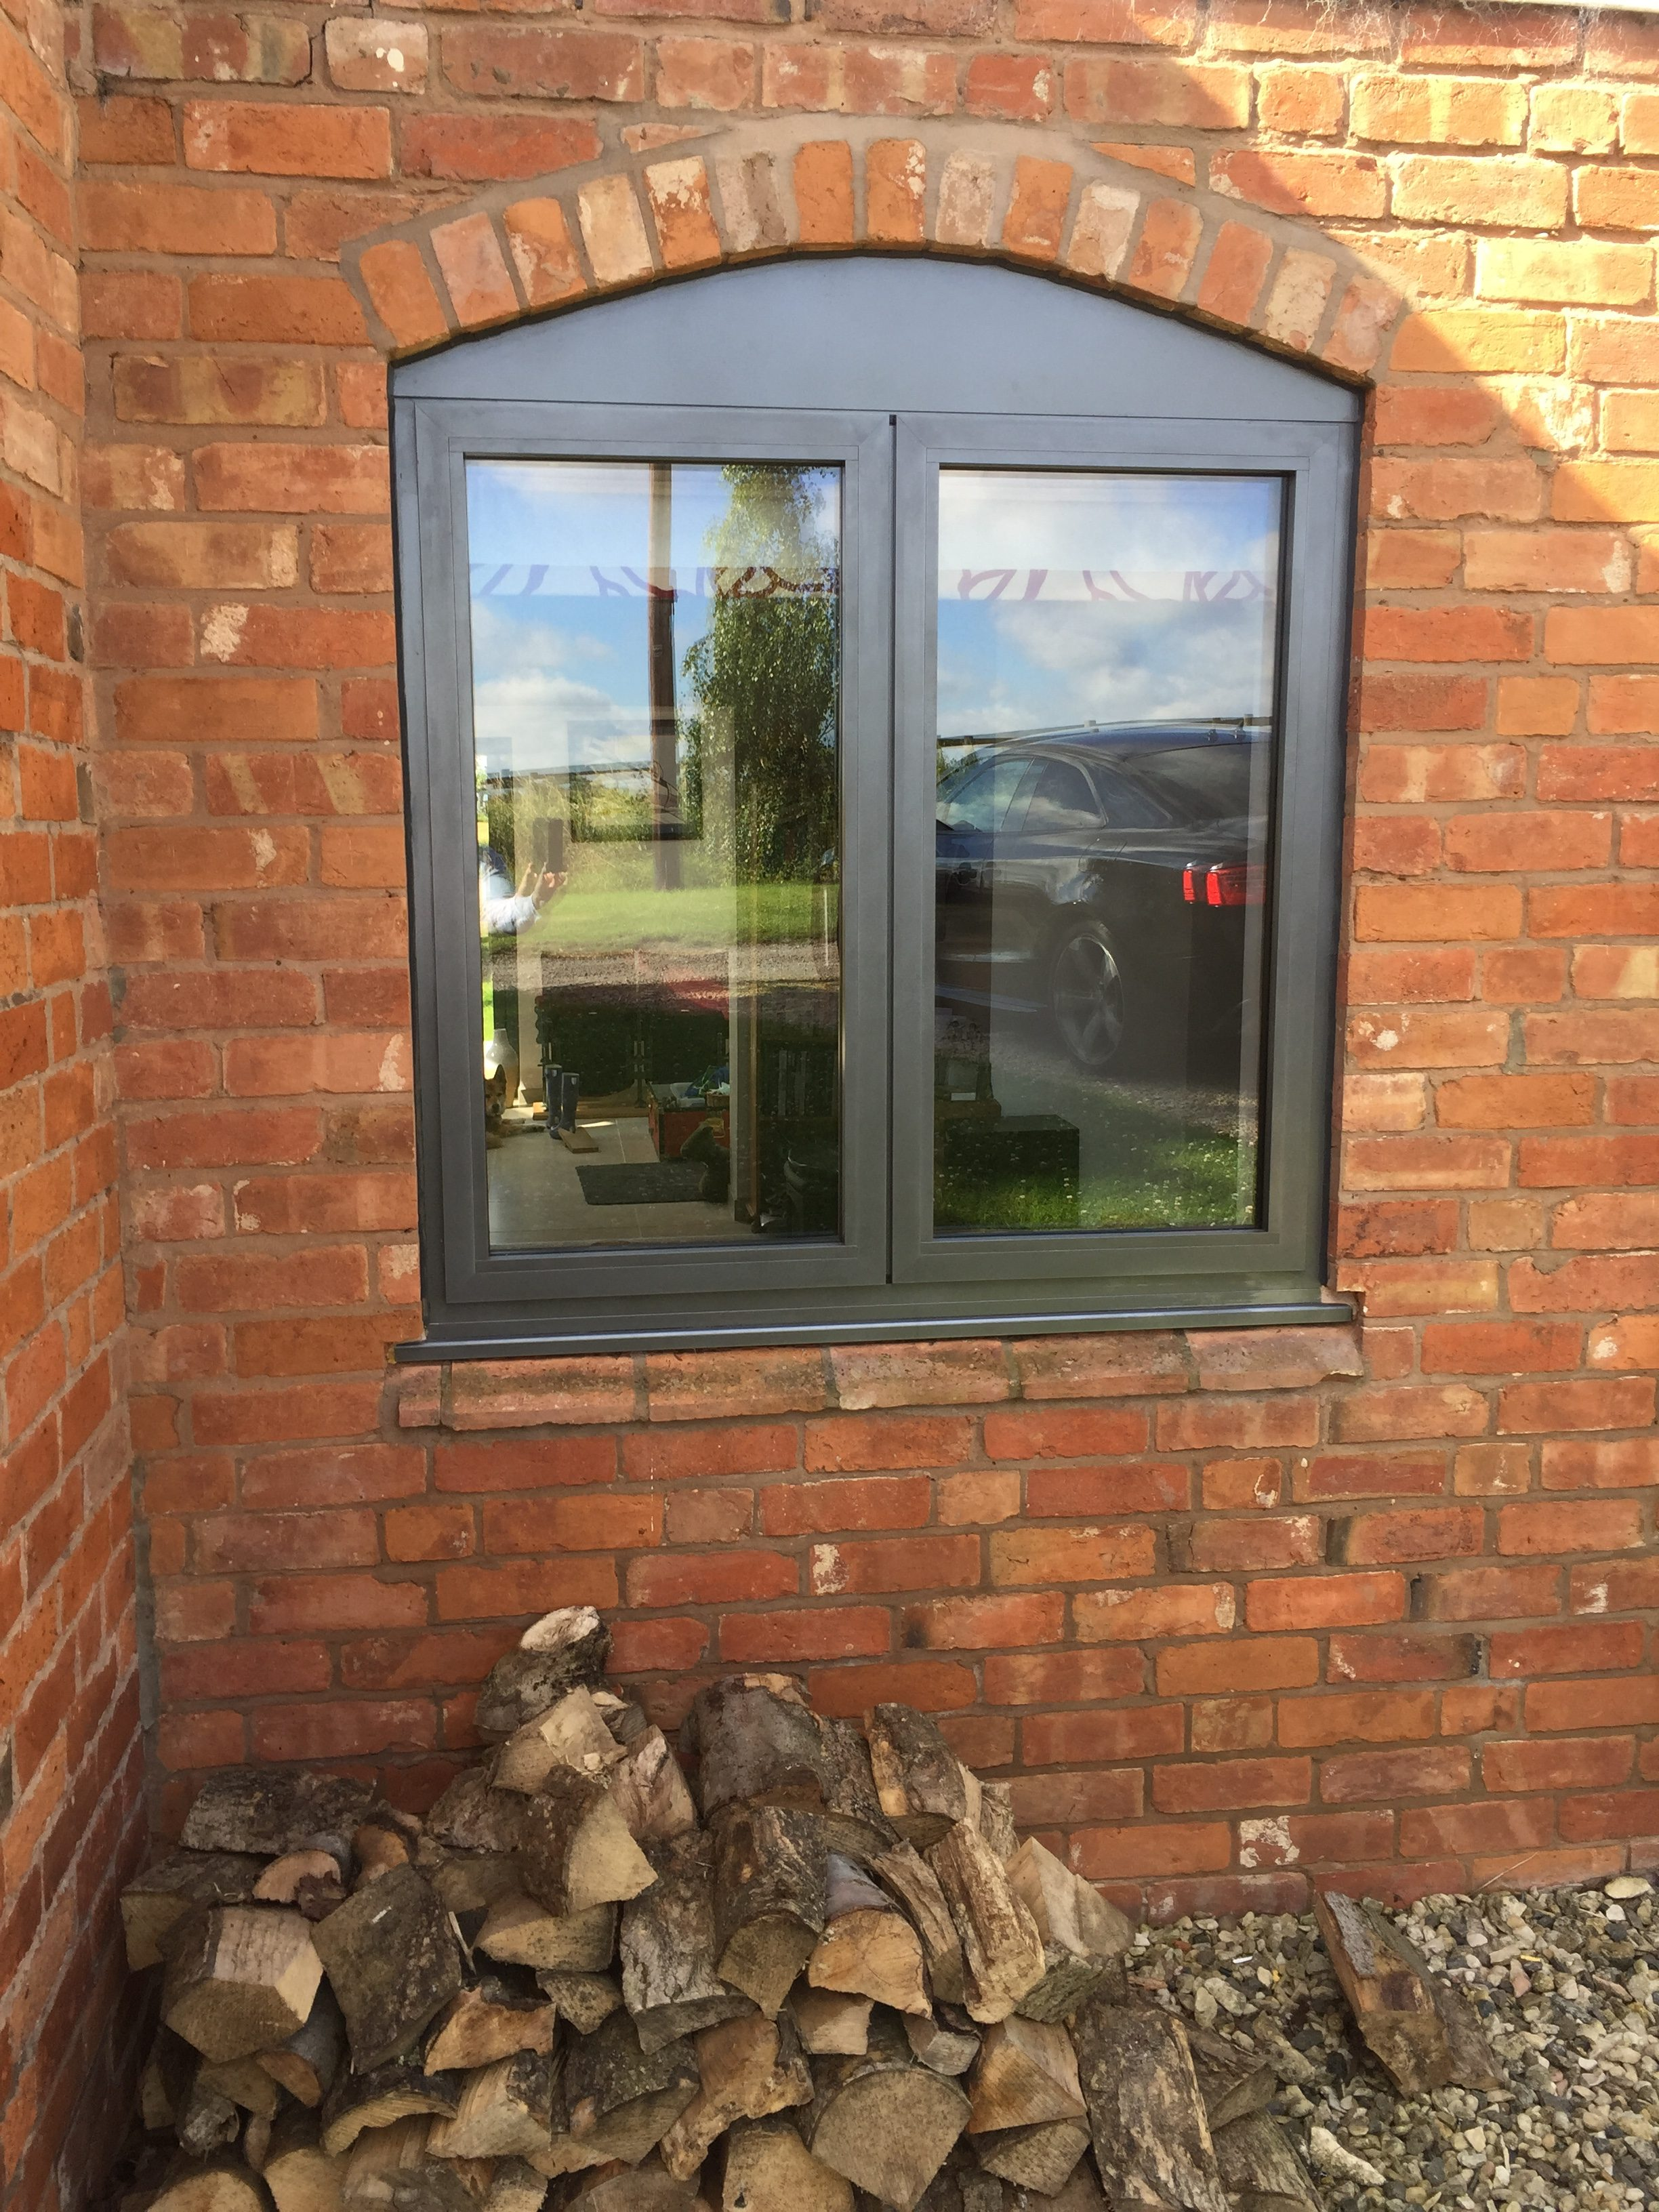 Up-close with the new Front of the lovely cottage with all new aluminium frames